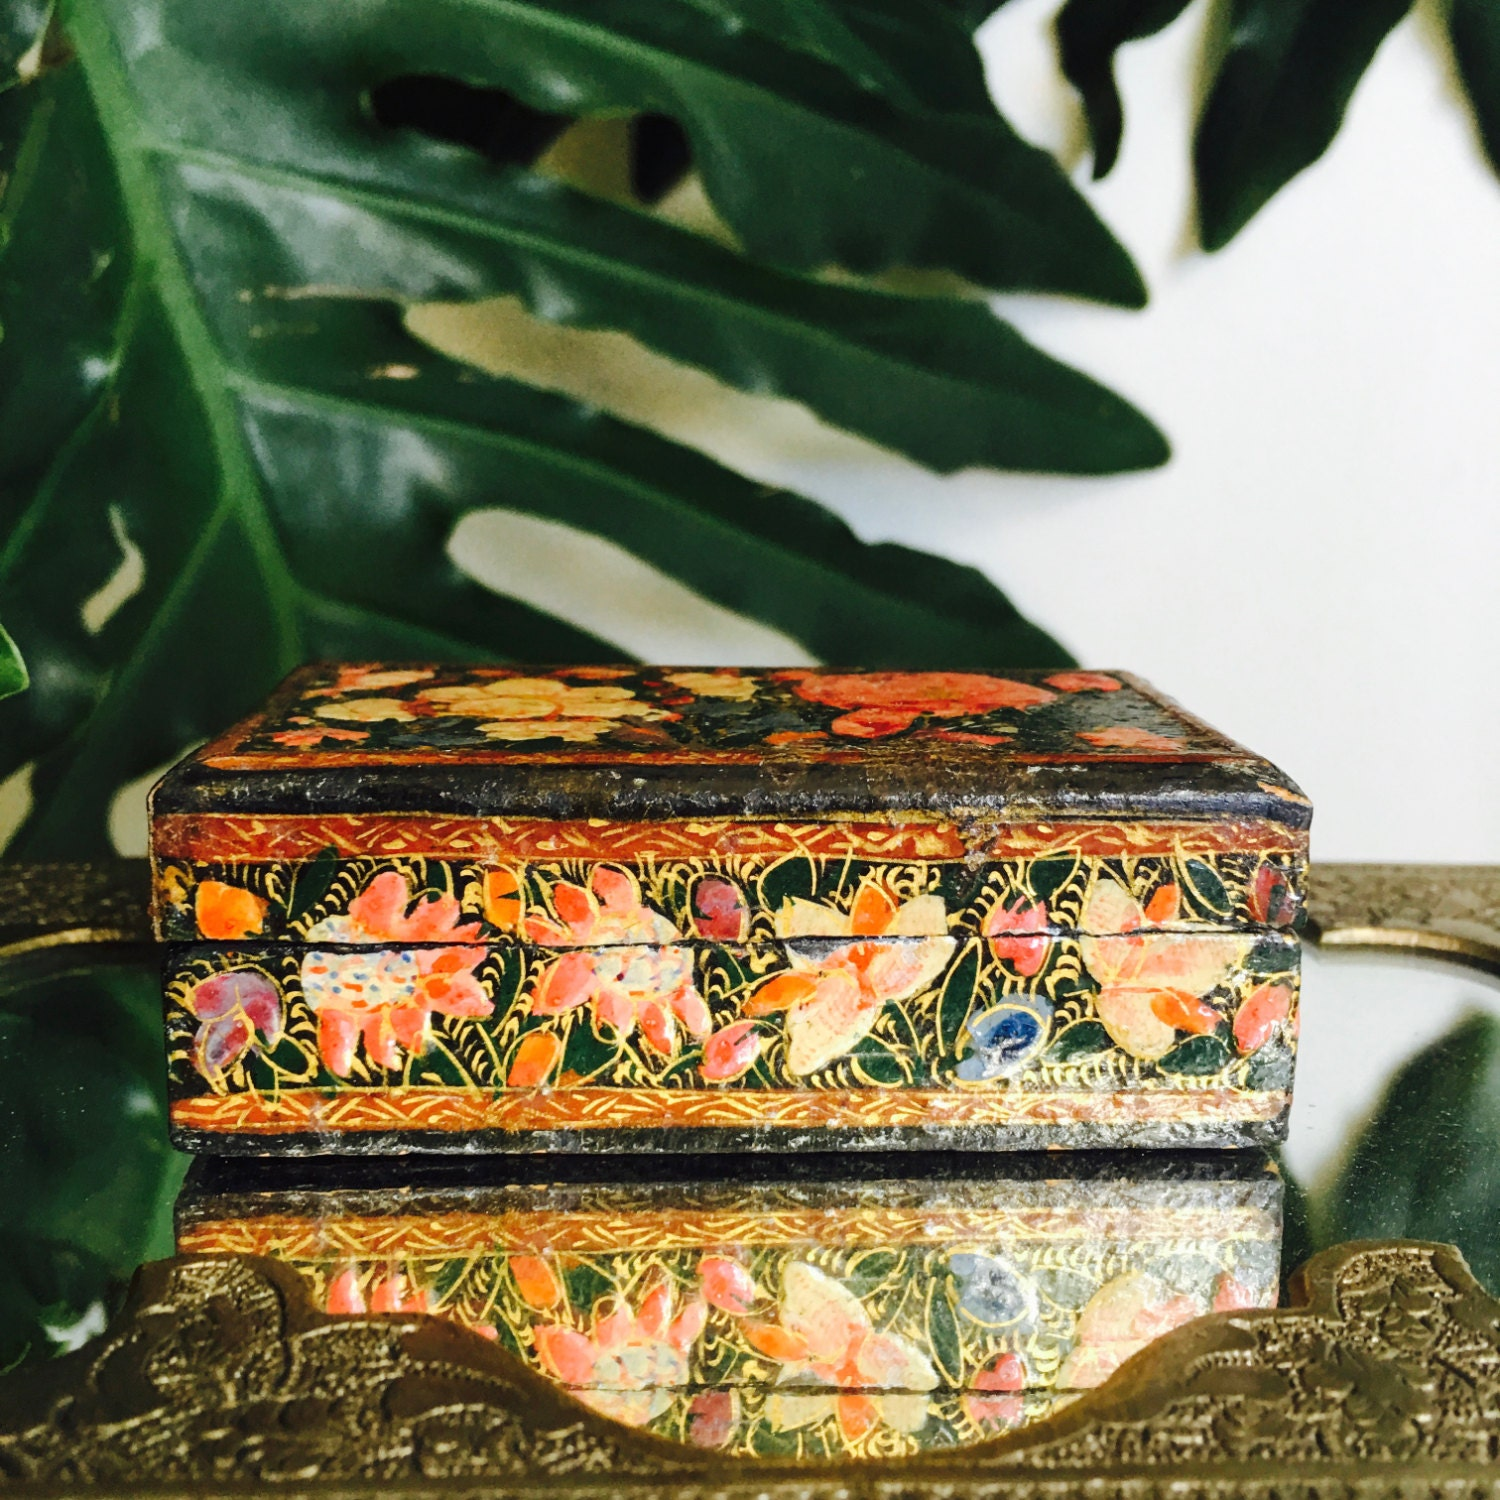 Antique floral jewelry box from fengsway on etsy studio for Just my style personalized jewelry studio